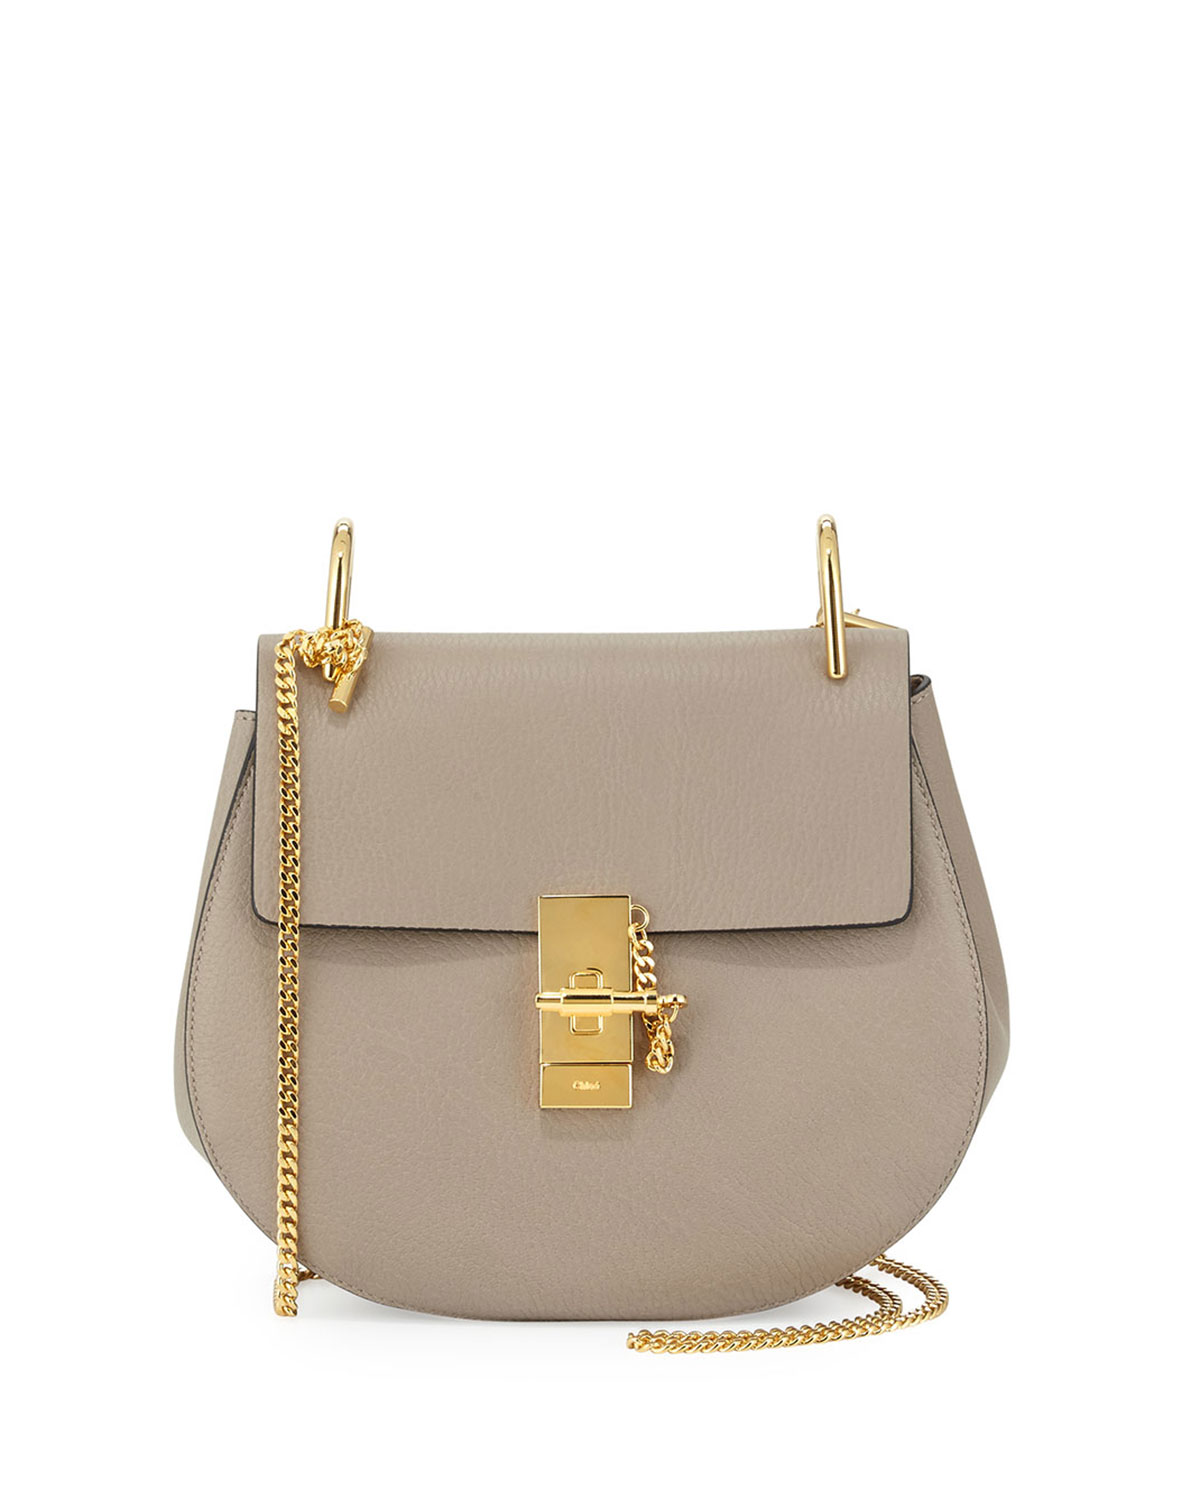 0f119810916e Chloe Drew Shoulder Bag